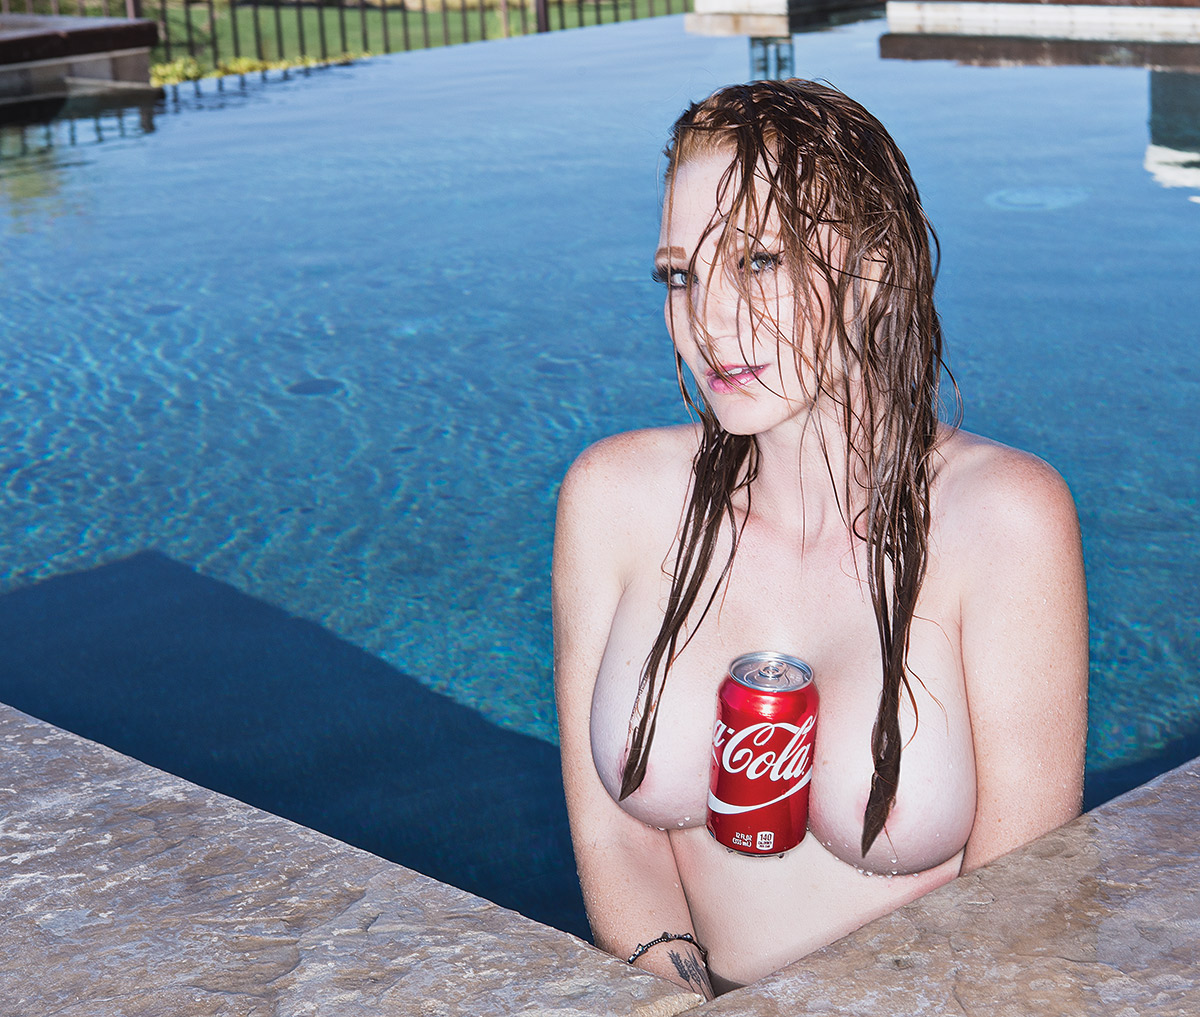 Hold a coke with your breasts